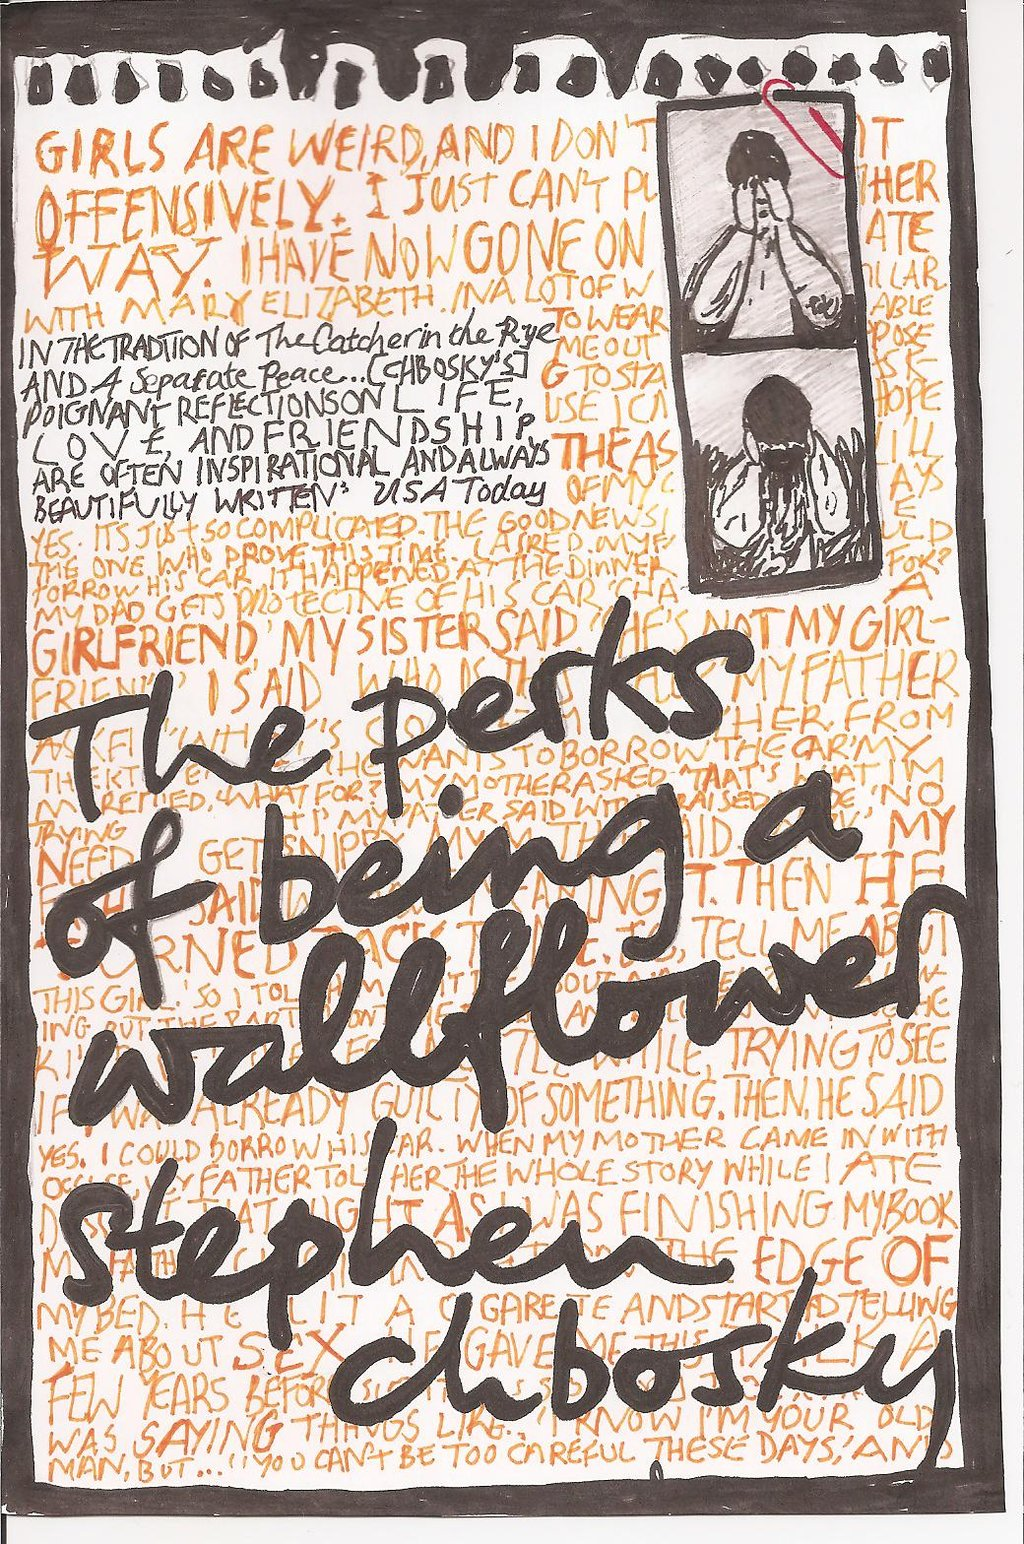 Boekcover The perks of being a wallflower